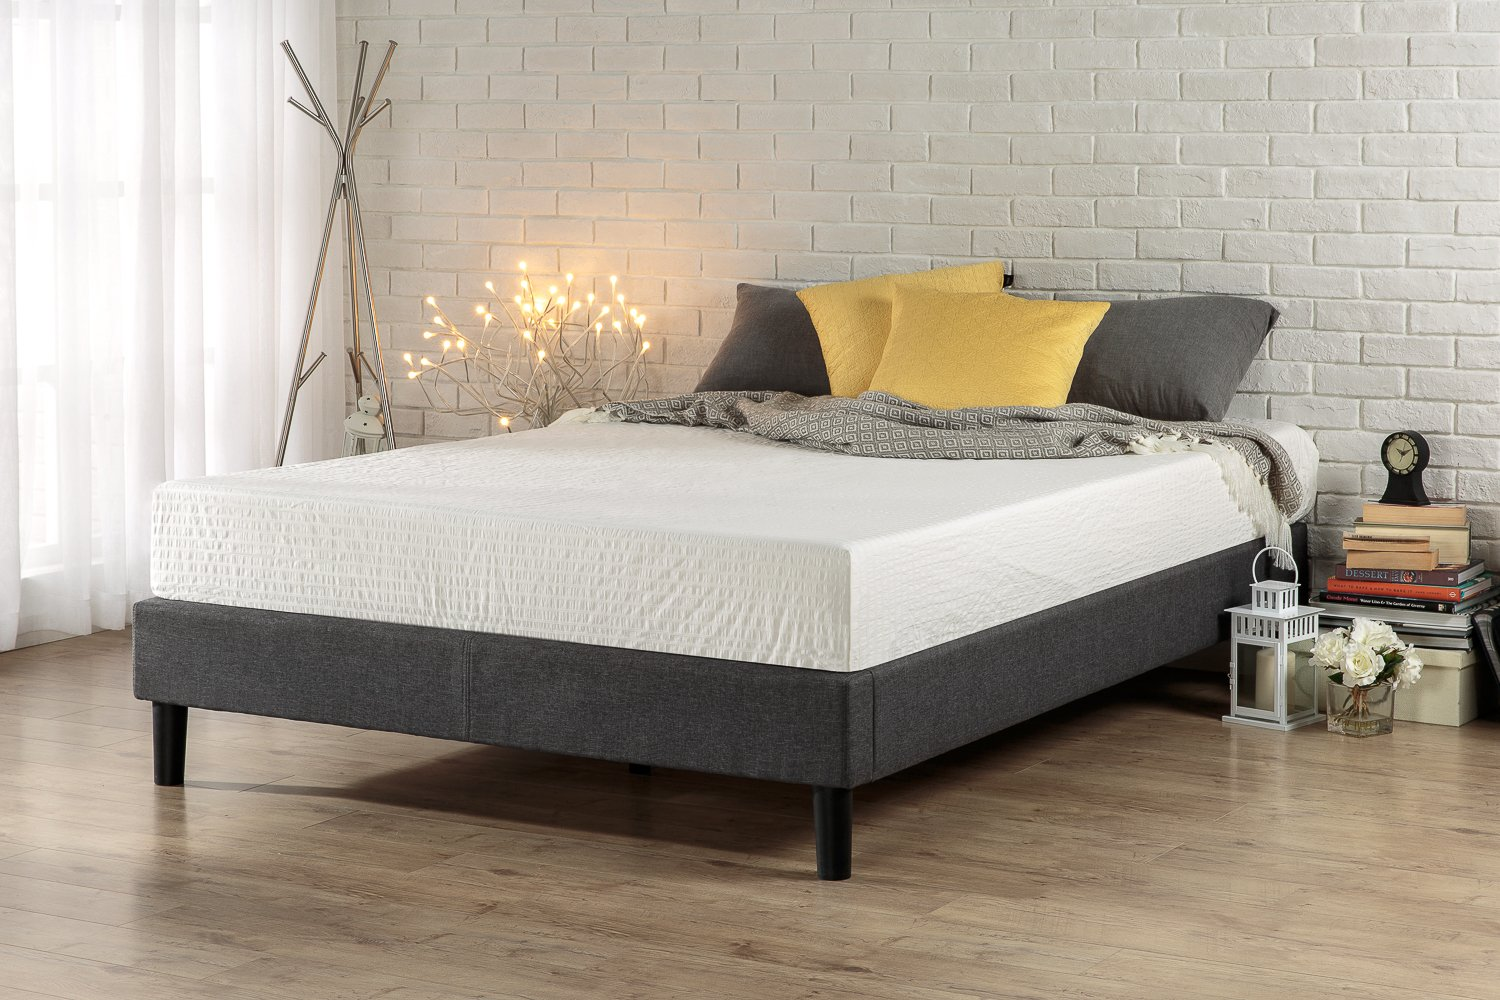 Zinus Essential Upholstered Platform Bed Frame / Mattress Foundation